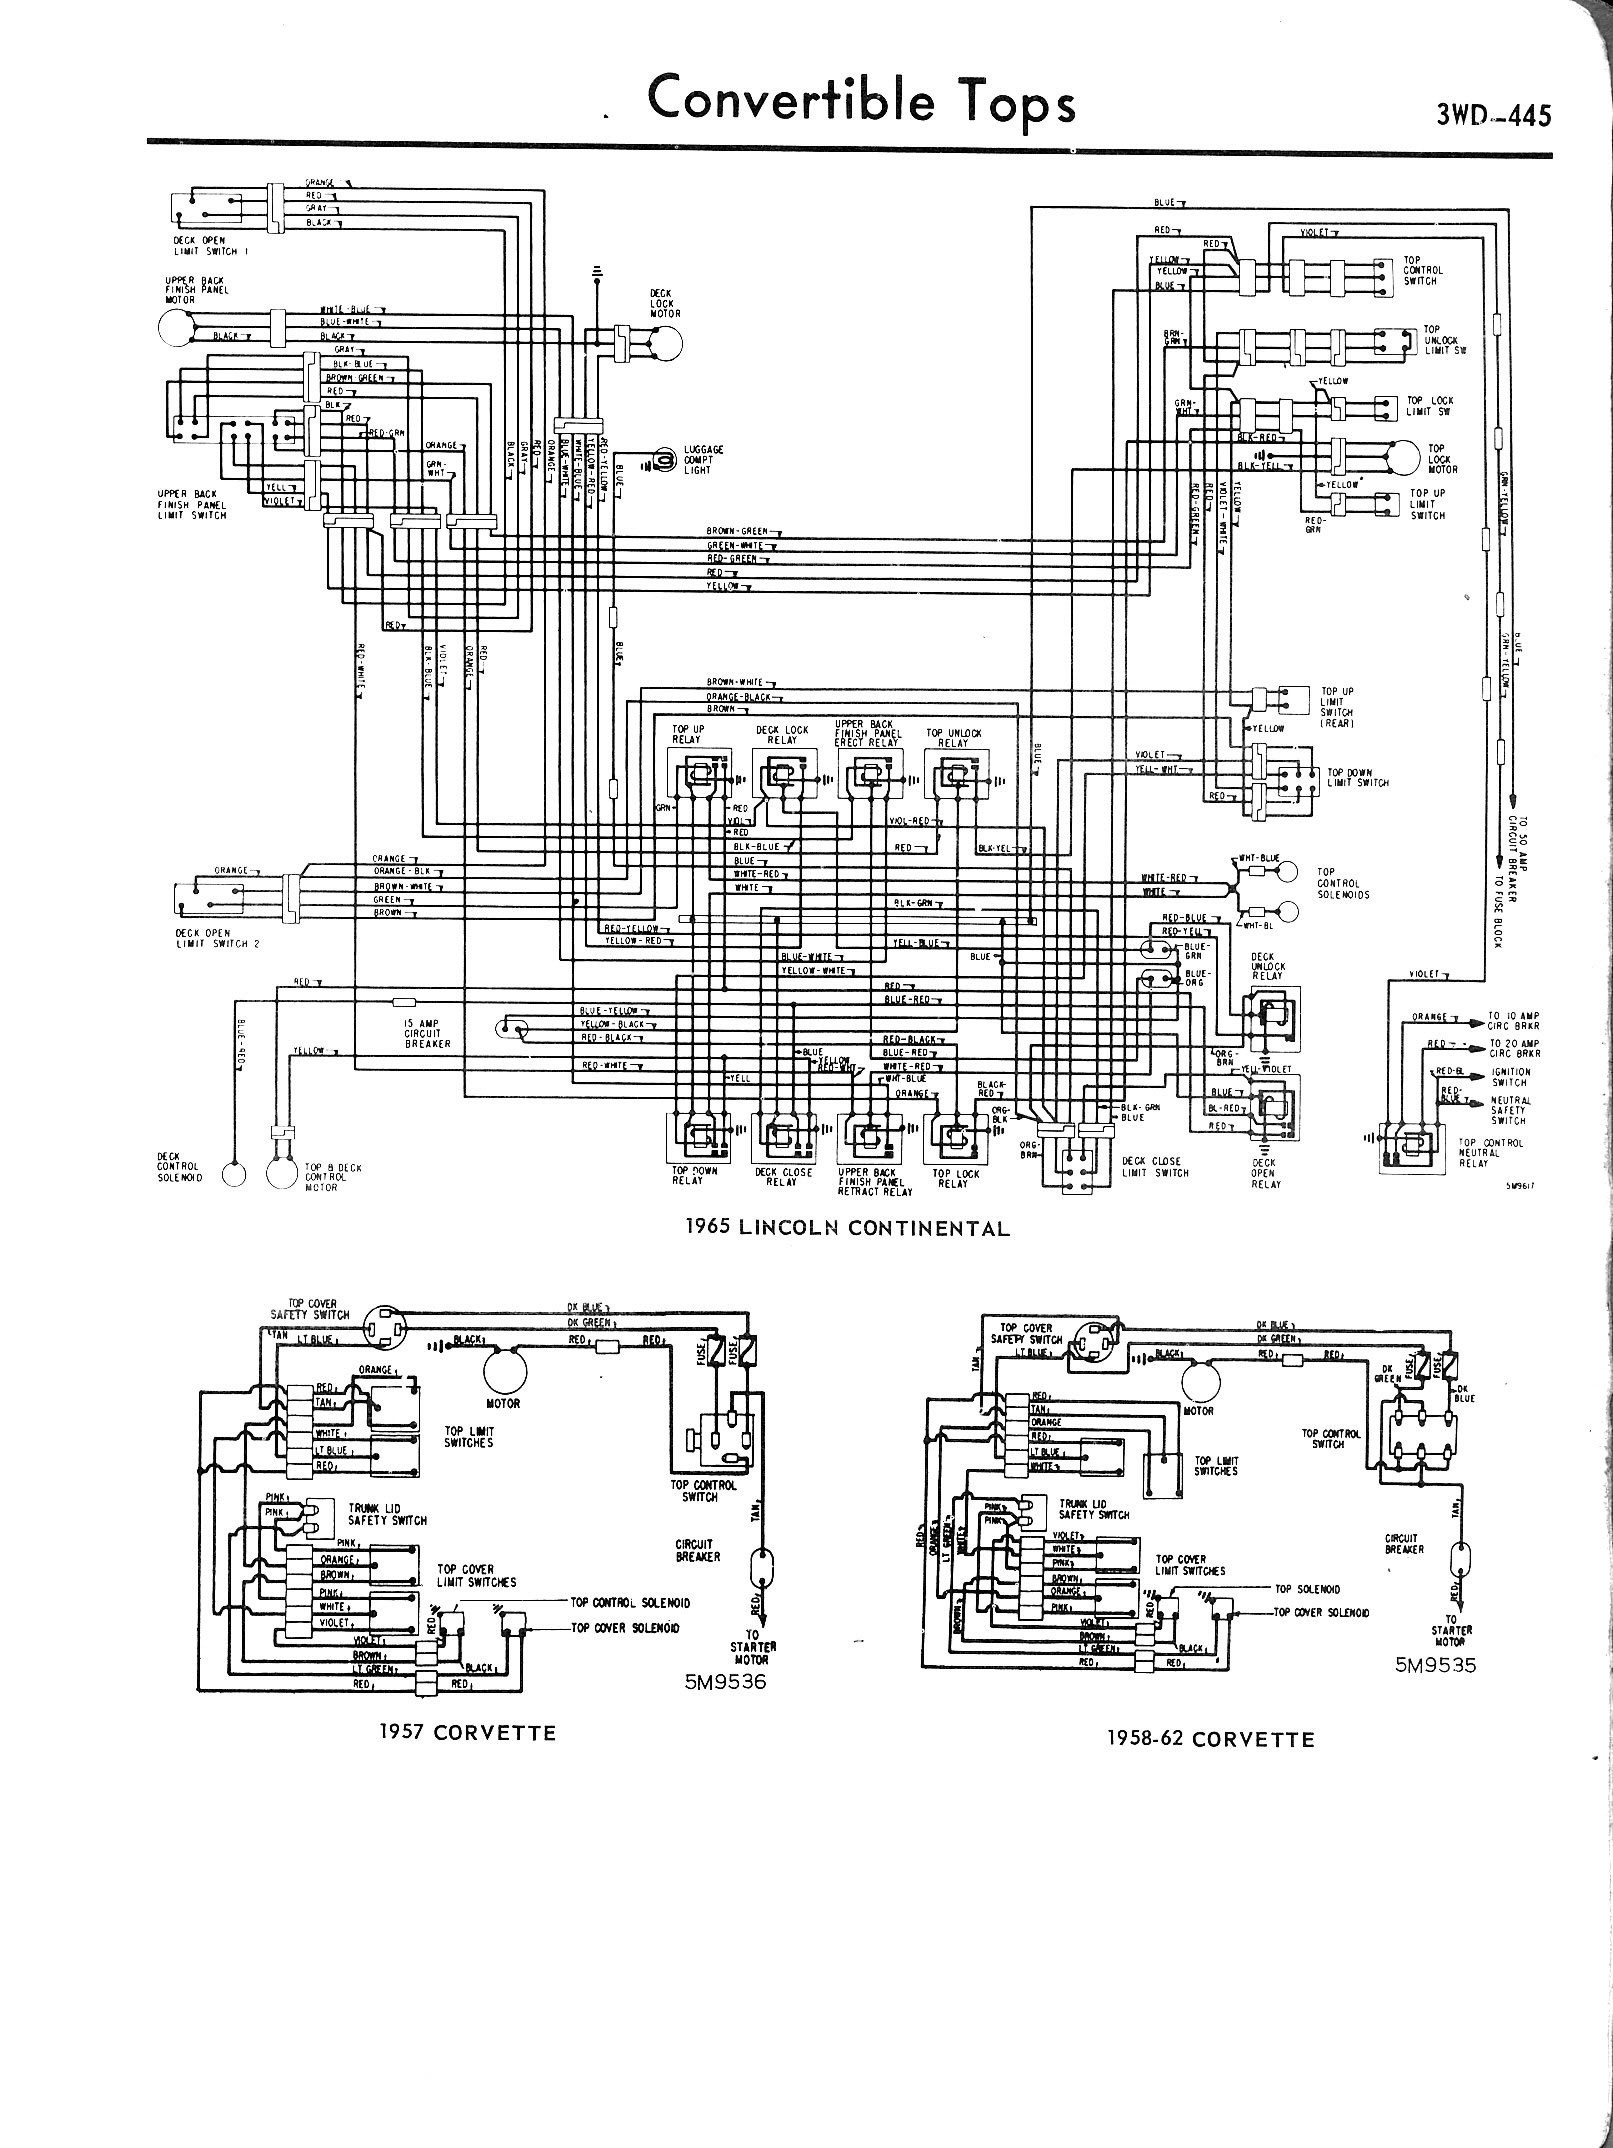 2 furthermore Showthread additionally 1953 Chevy Ignition Wiring Diagram as well PP6i 16788 also 73468 2004 Cadillac Cts Belt Diagram. on 55 chevy ignition switch wiring diagram